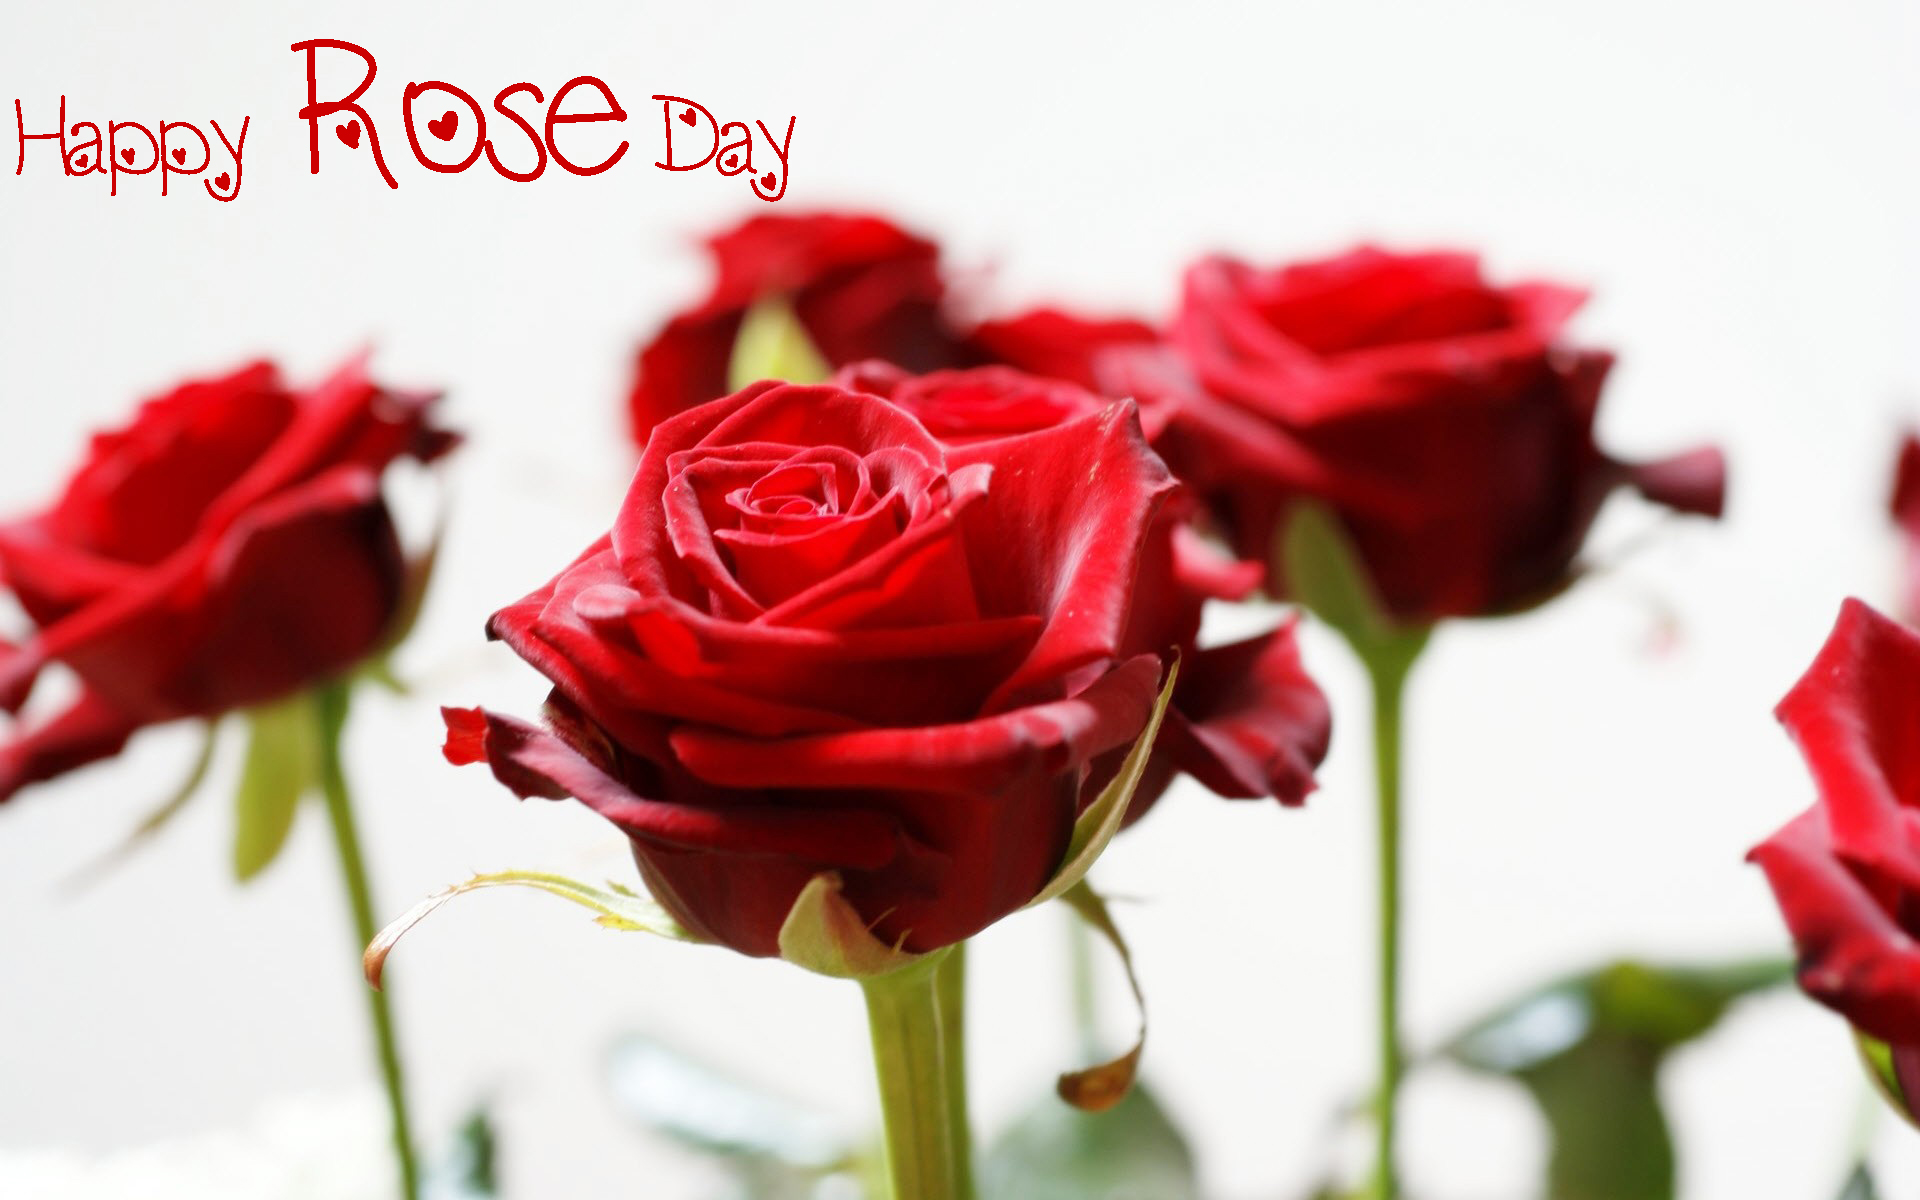 Happy-Rose-Day 2016